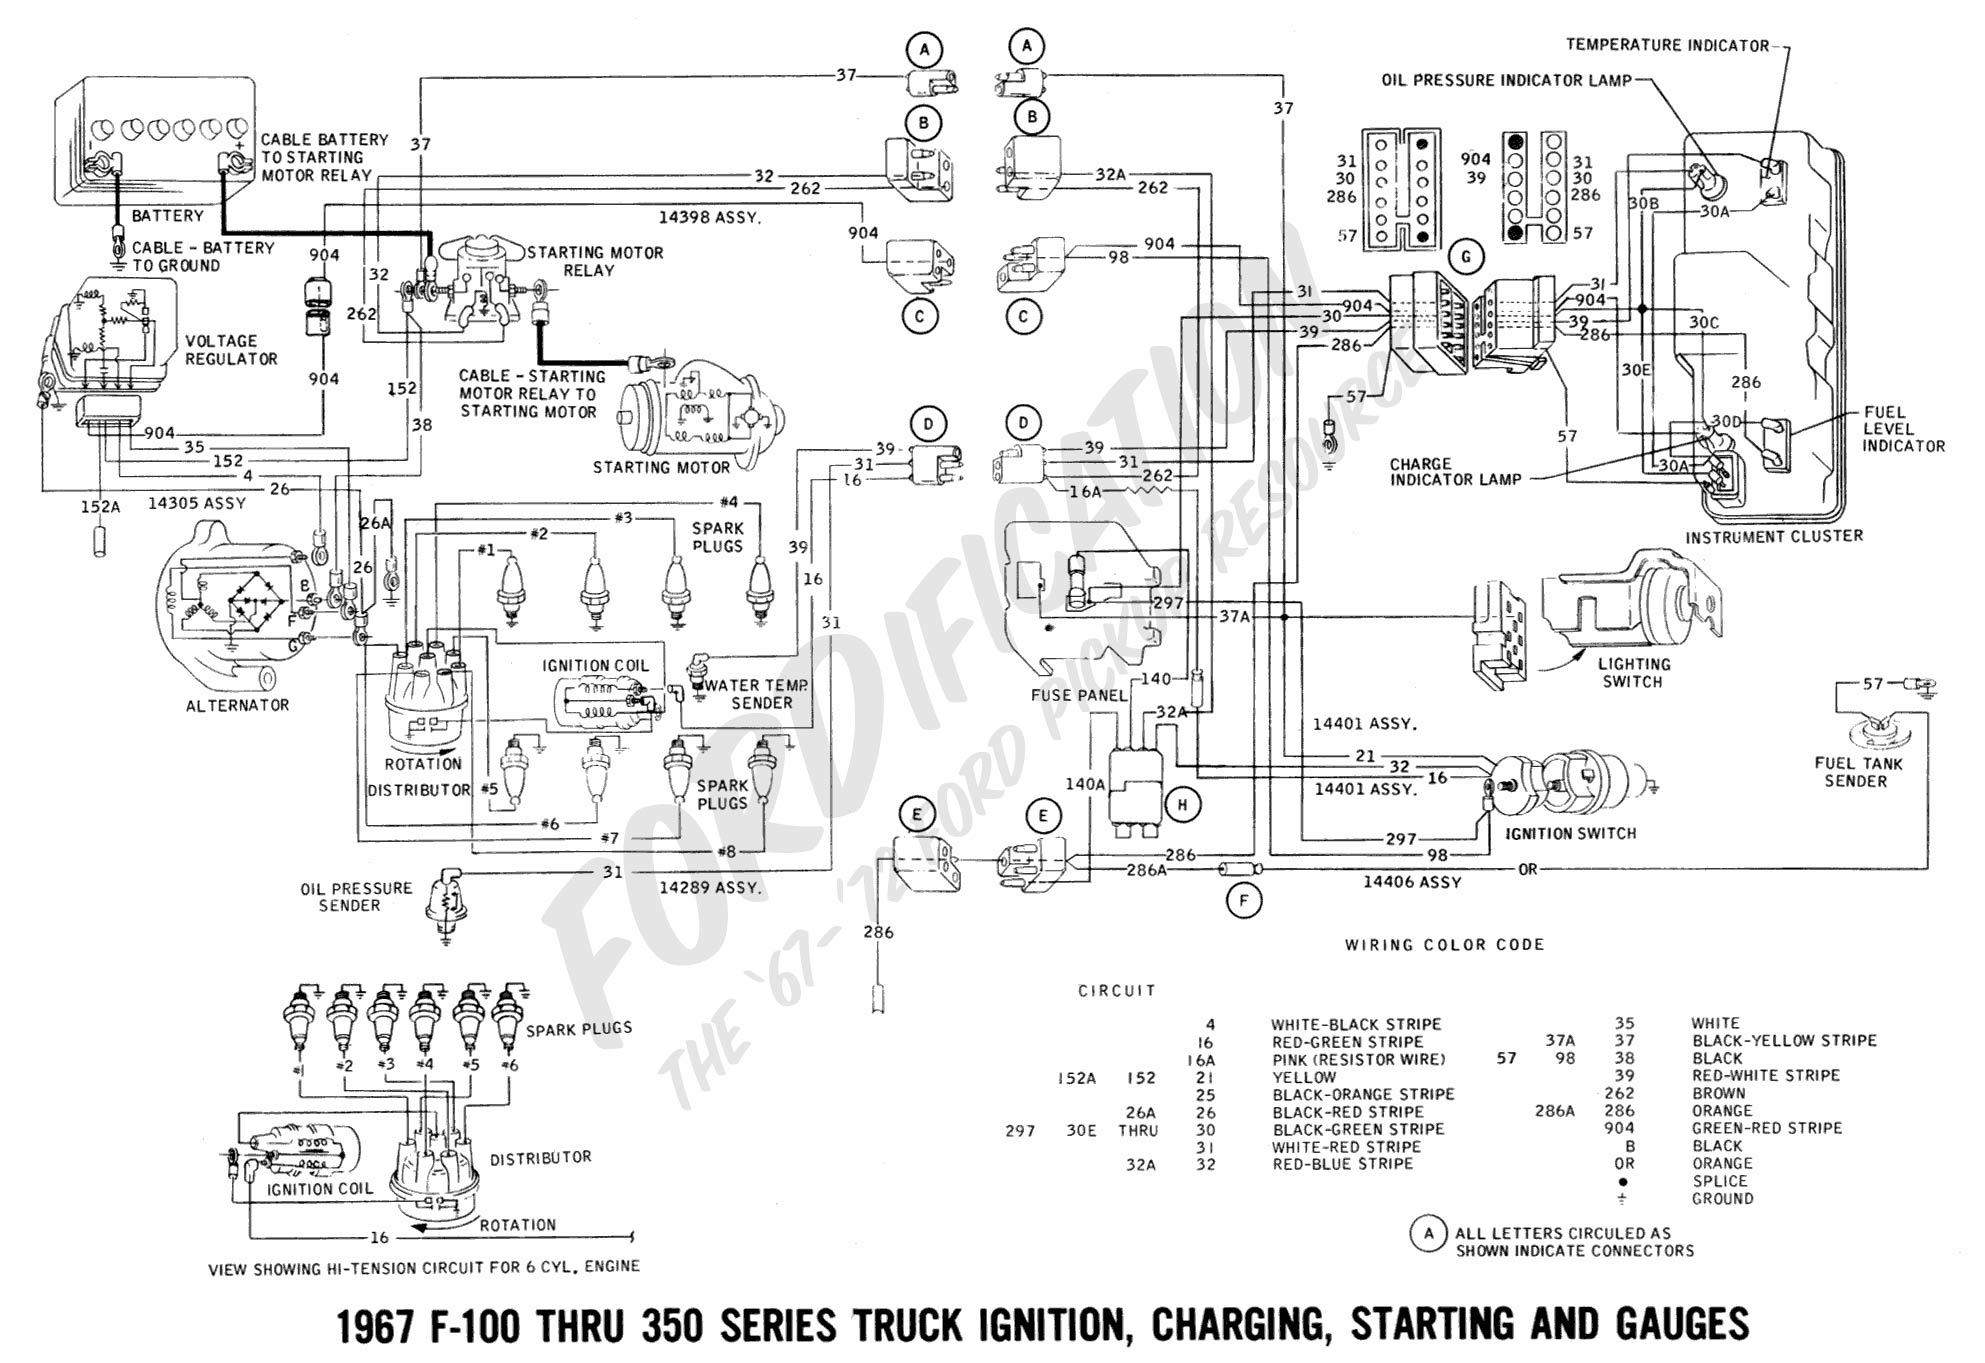 1960 ford wiring diagram wiring diagrams schematics scintillating 1960 ford falcon fuel pump wiring diagram gallery 1965 ford wiring diagram 1950 ford wiring cheapraybanclubmaster Image collections